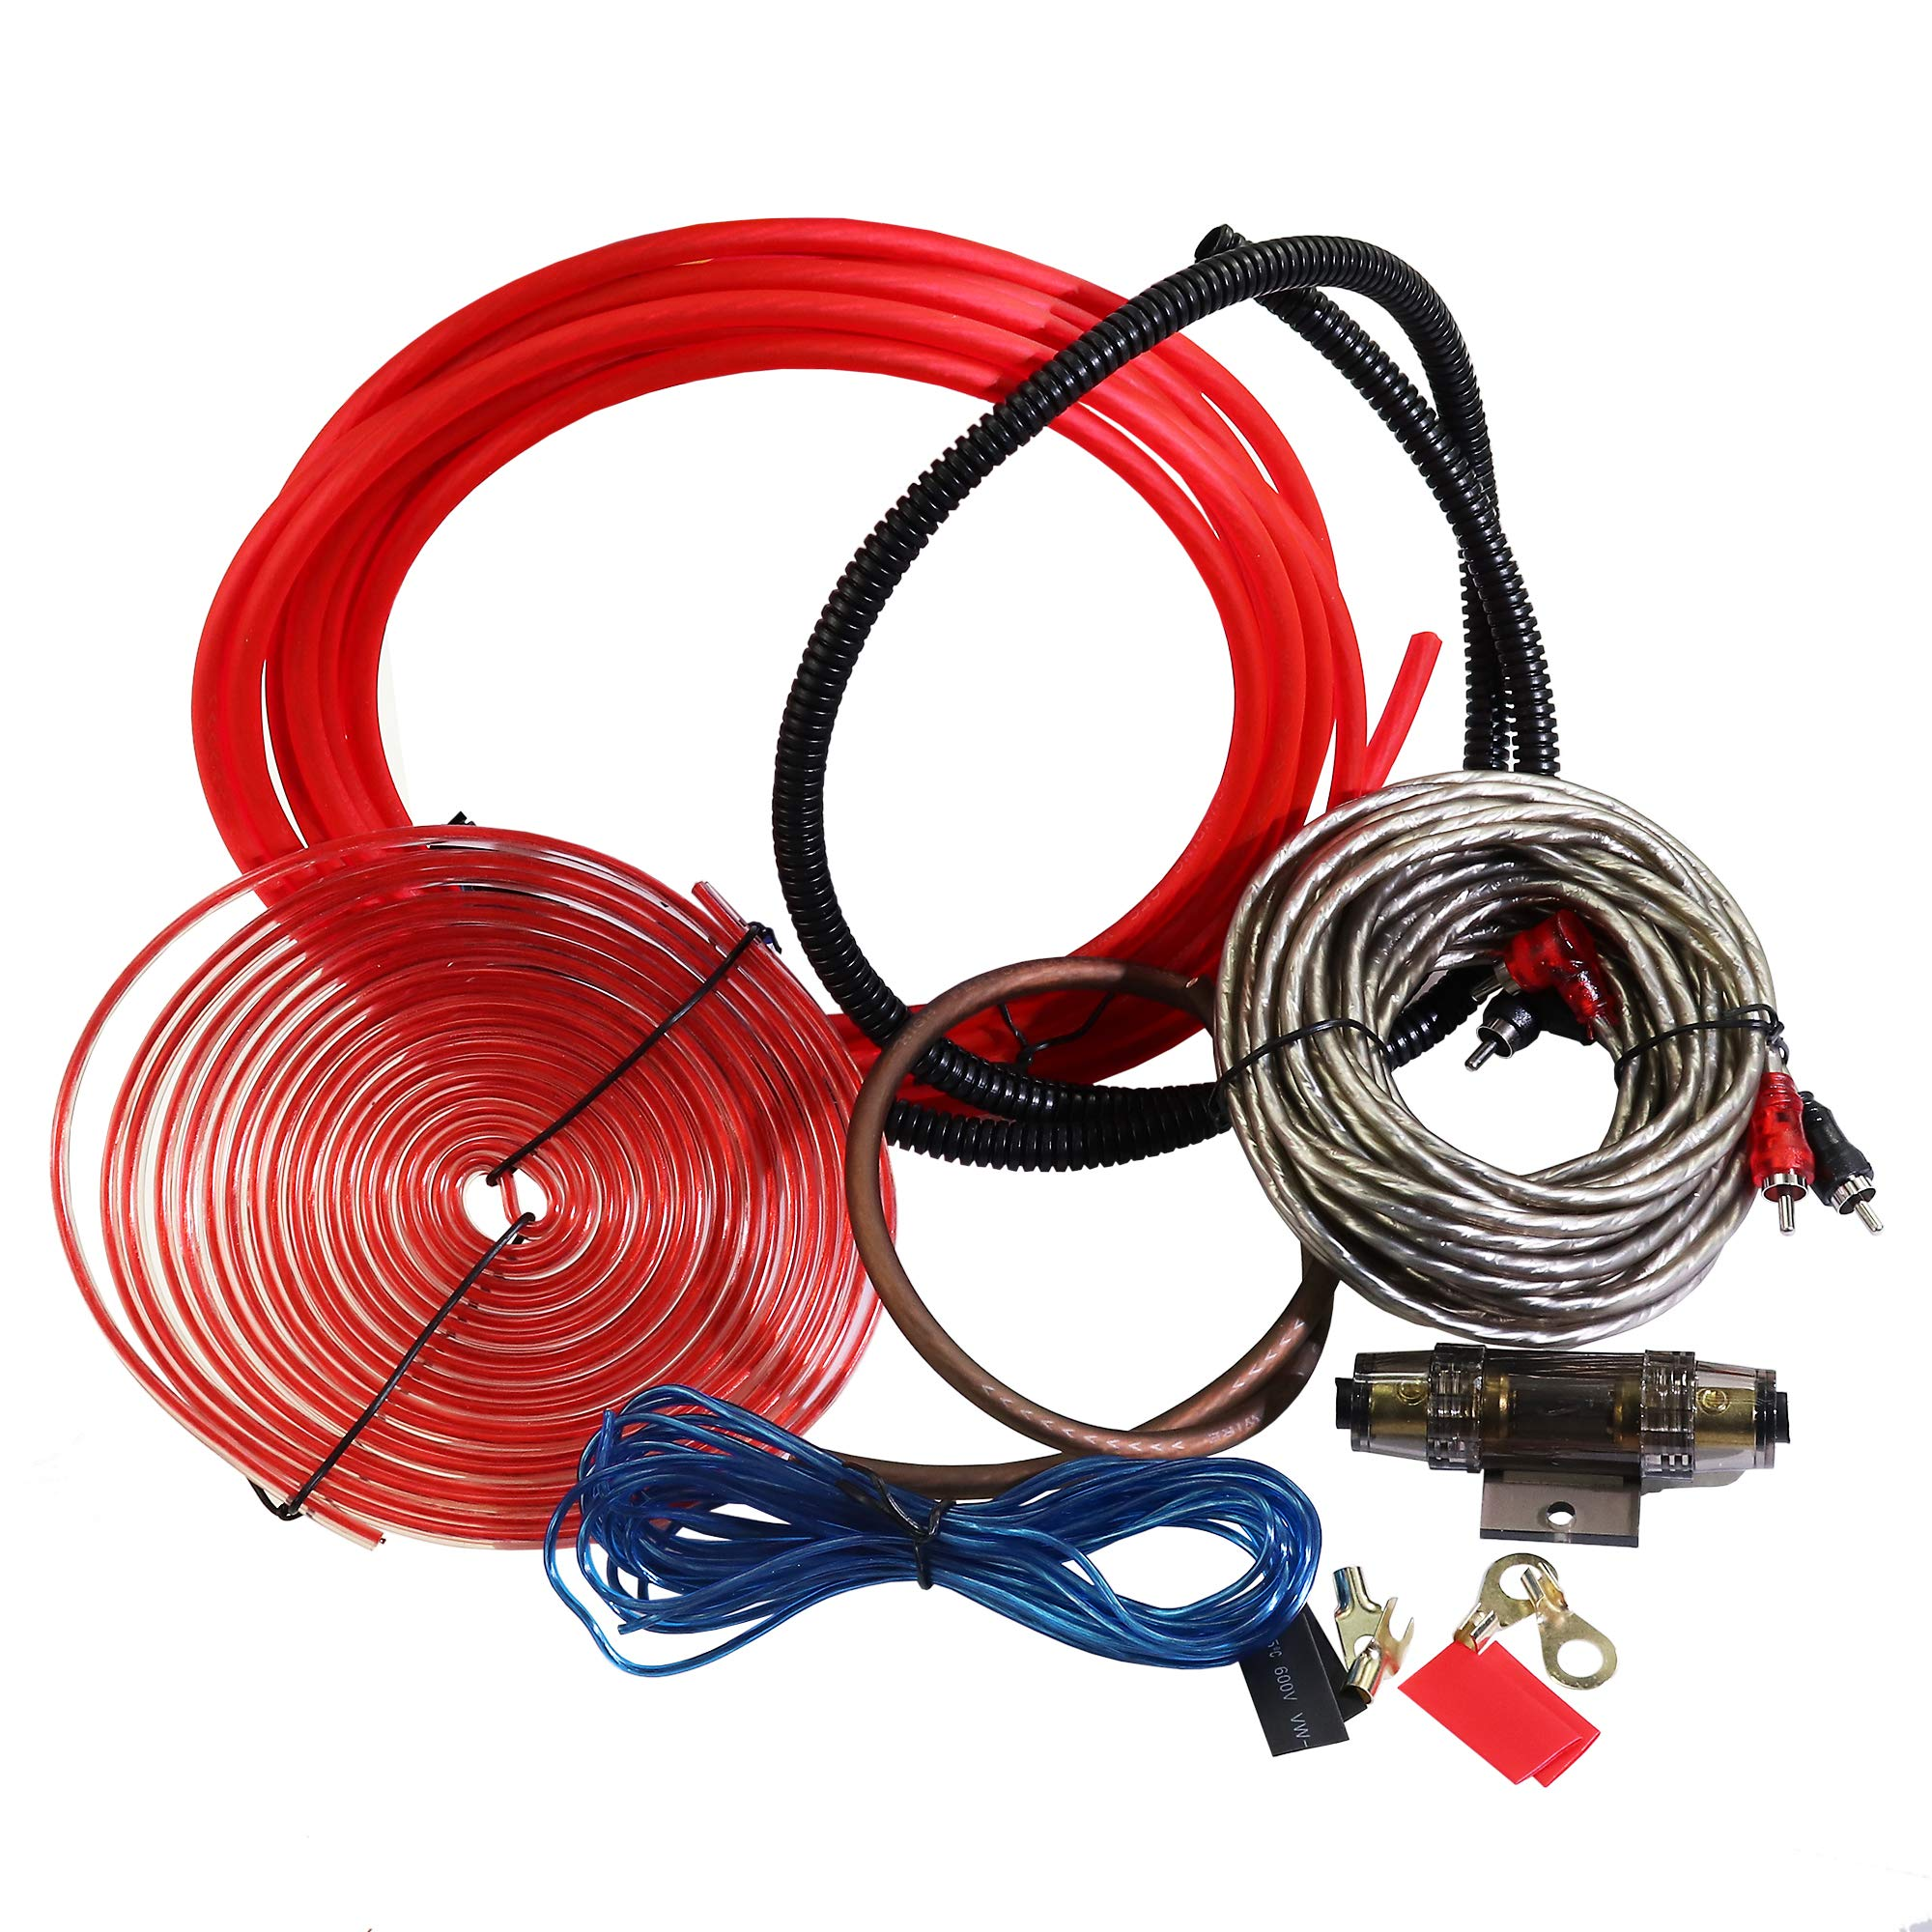 Subwoofers and Speakers A Car Amplifier Wiring Kit Helps You Make Connections and Brings Power to Your Radio Welugnal 4 Gauge Amplifier Installation Wiring Kit